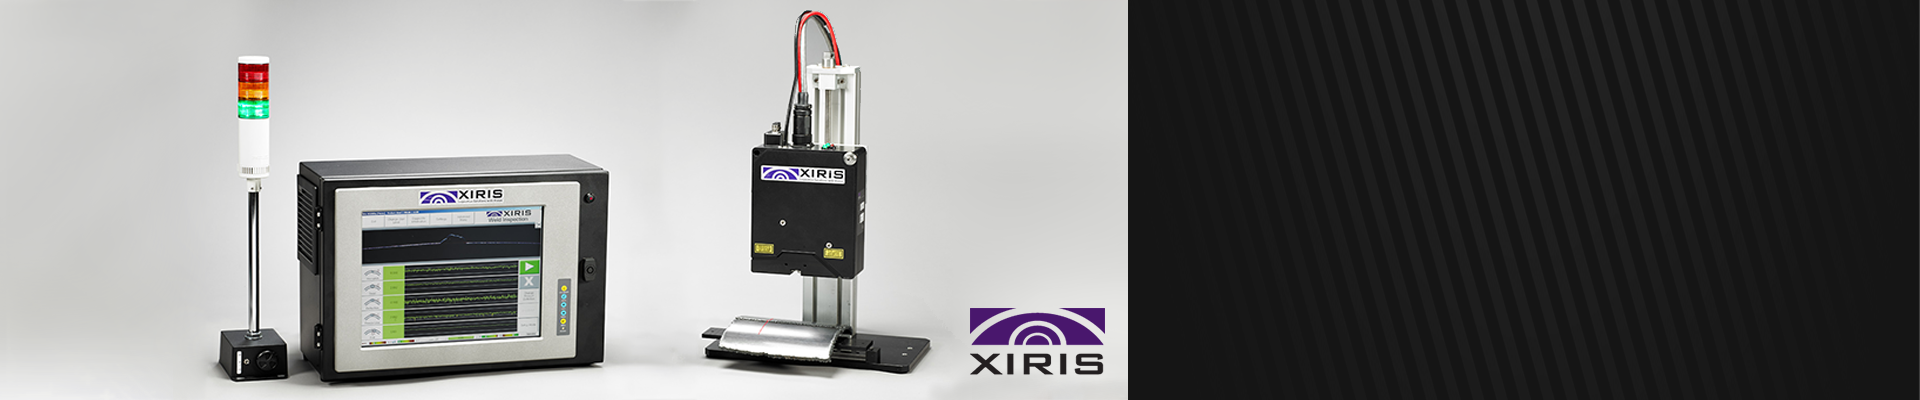 XIRIS, Laser equipment for process control in tube mills.